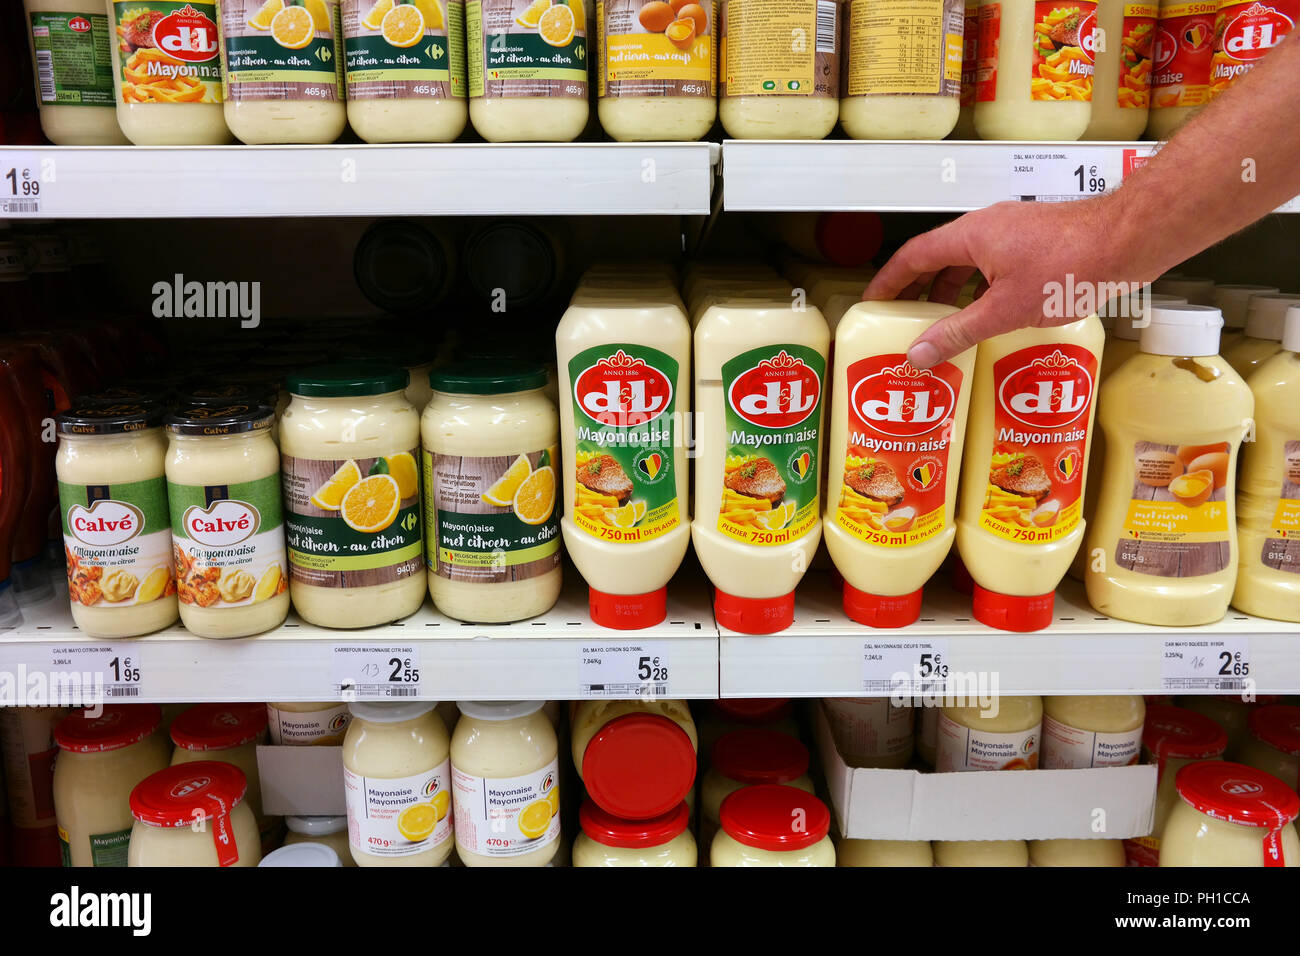 Shelves with various brands of Mayonnaise in a store - Stock Image